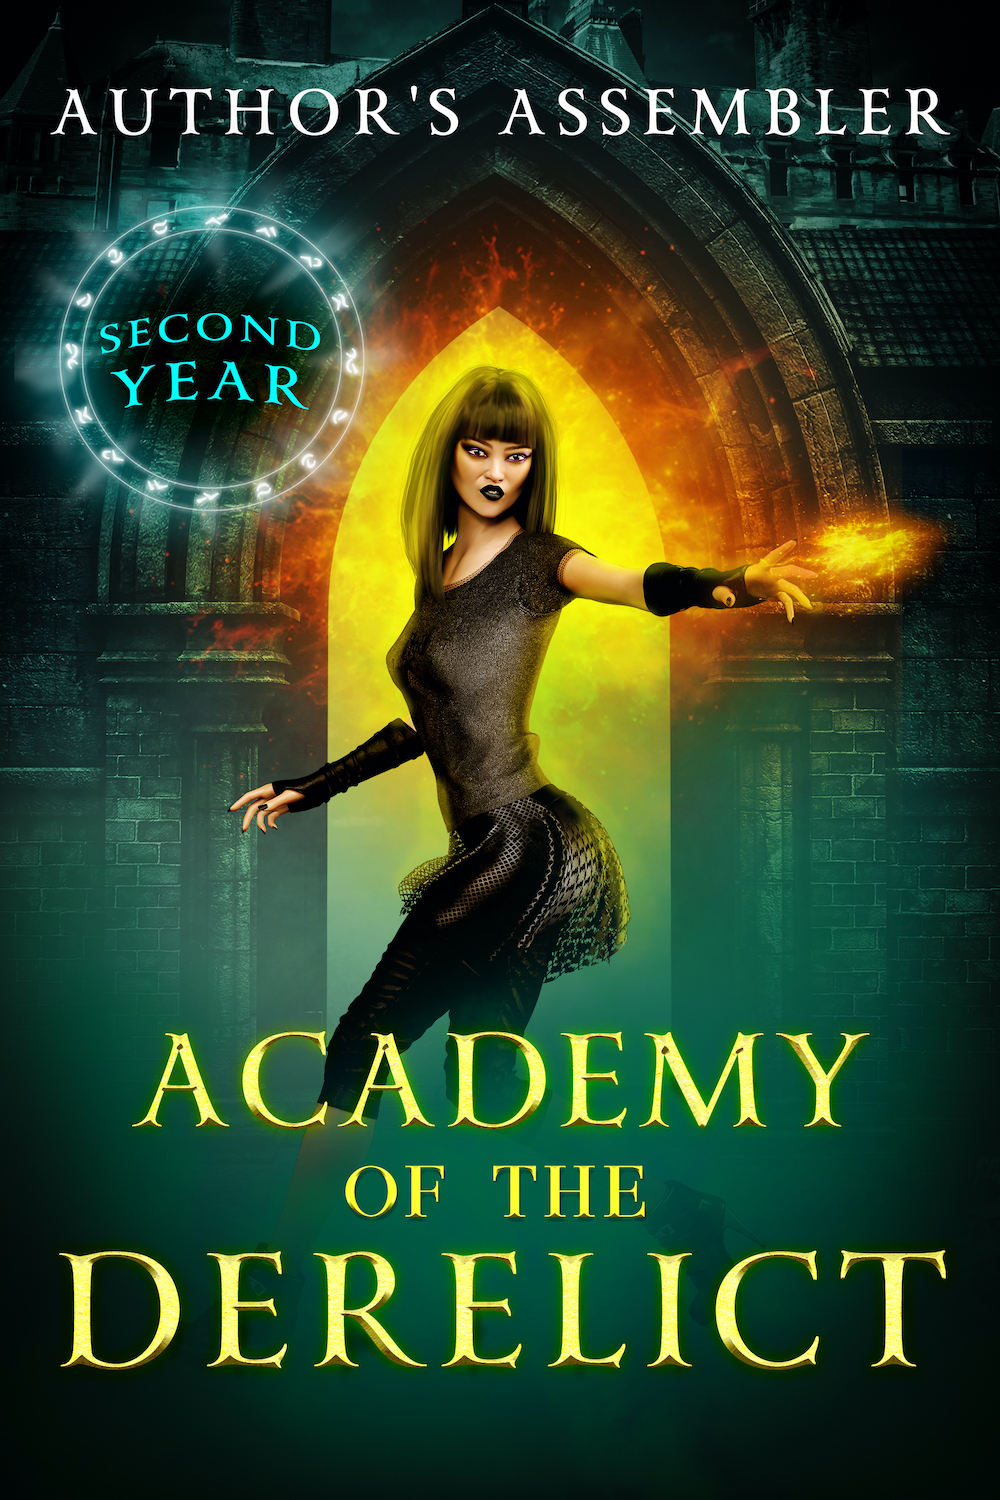 Academy of the Derelict Second Year